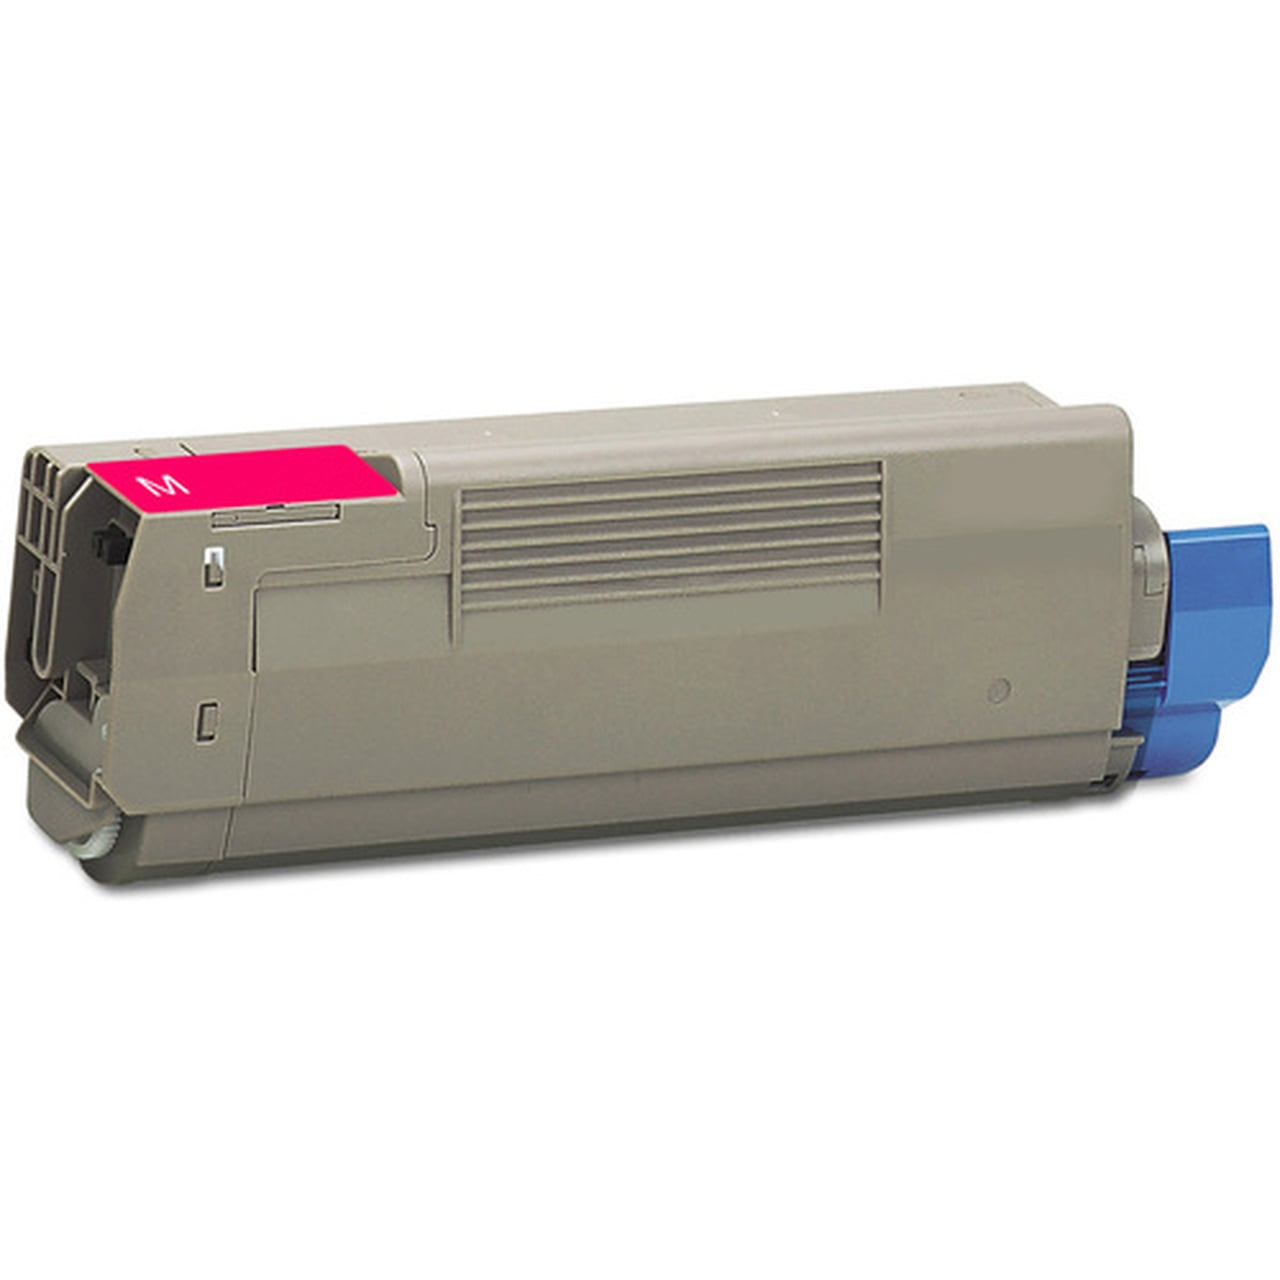 44059110 Toner Cartridge - Okidata Remanufactured (Magenta)